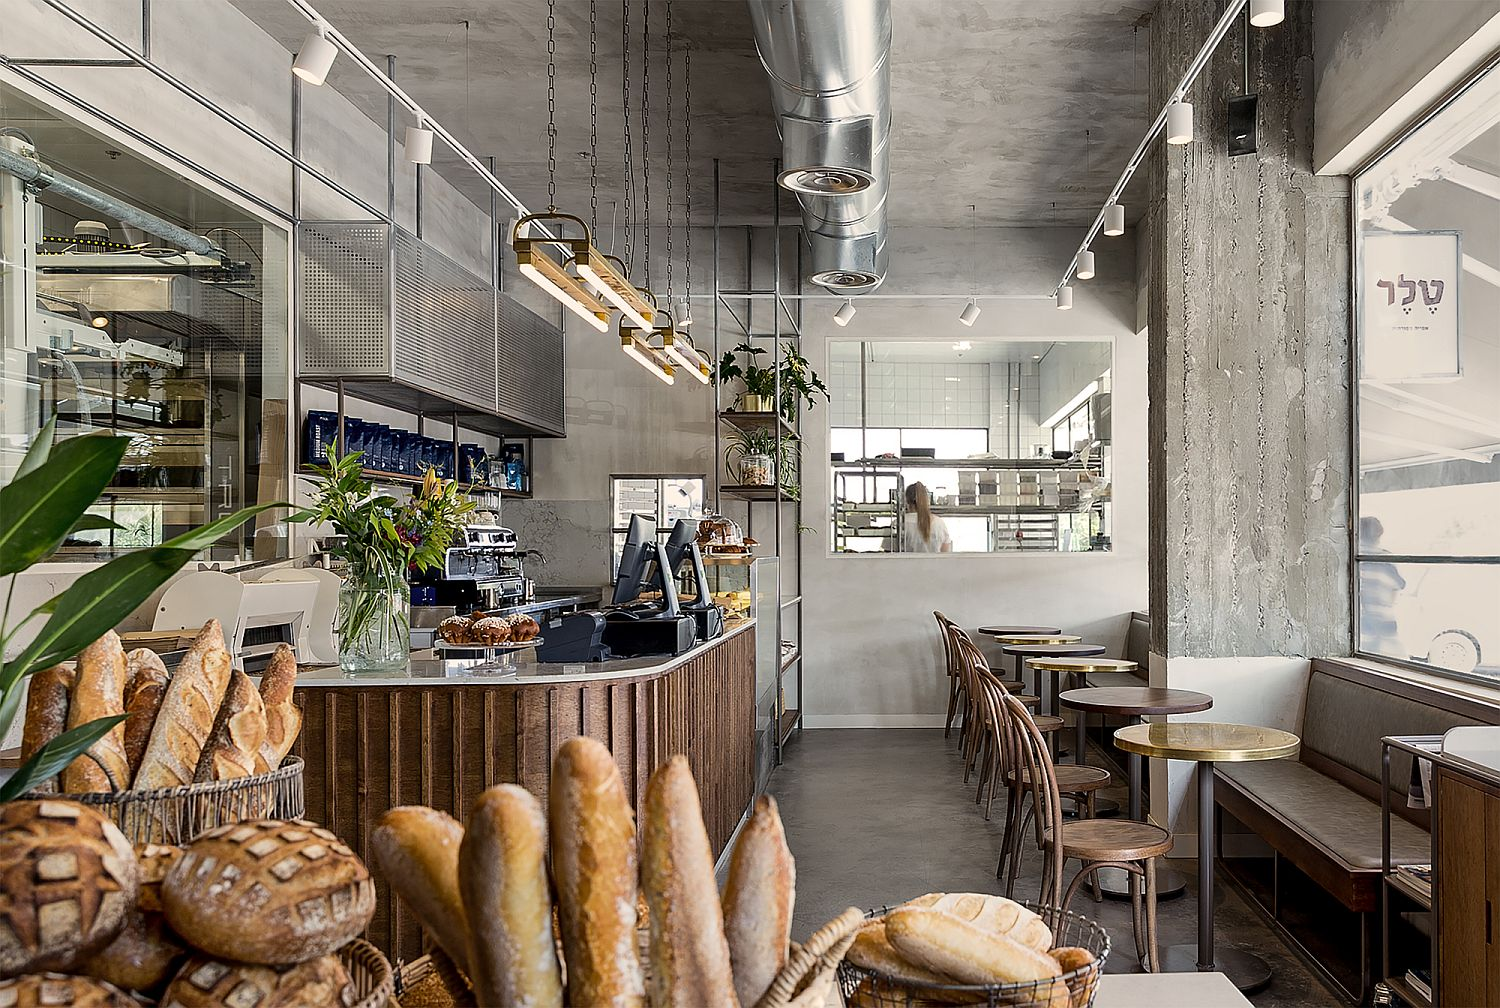 Creation-of-bread-library-inside-the-pastry-factory-in-Israel